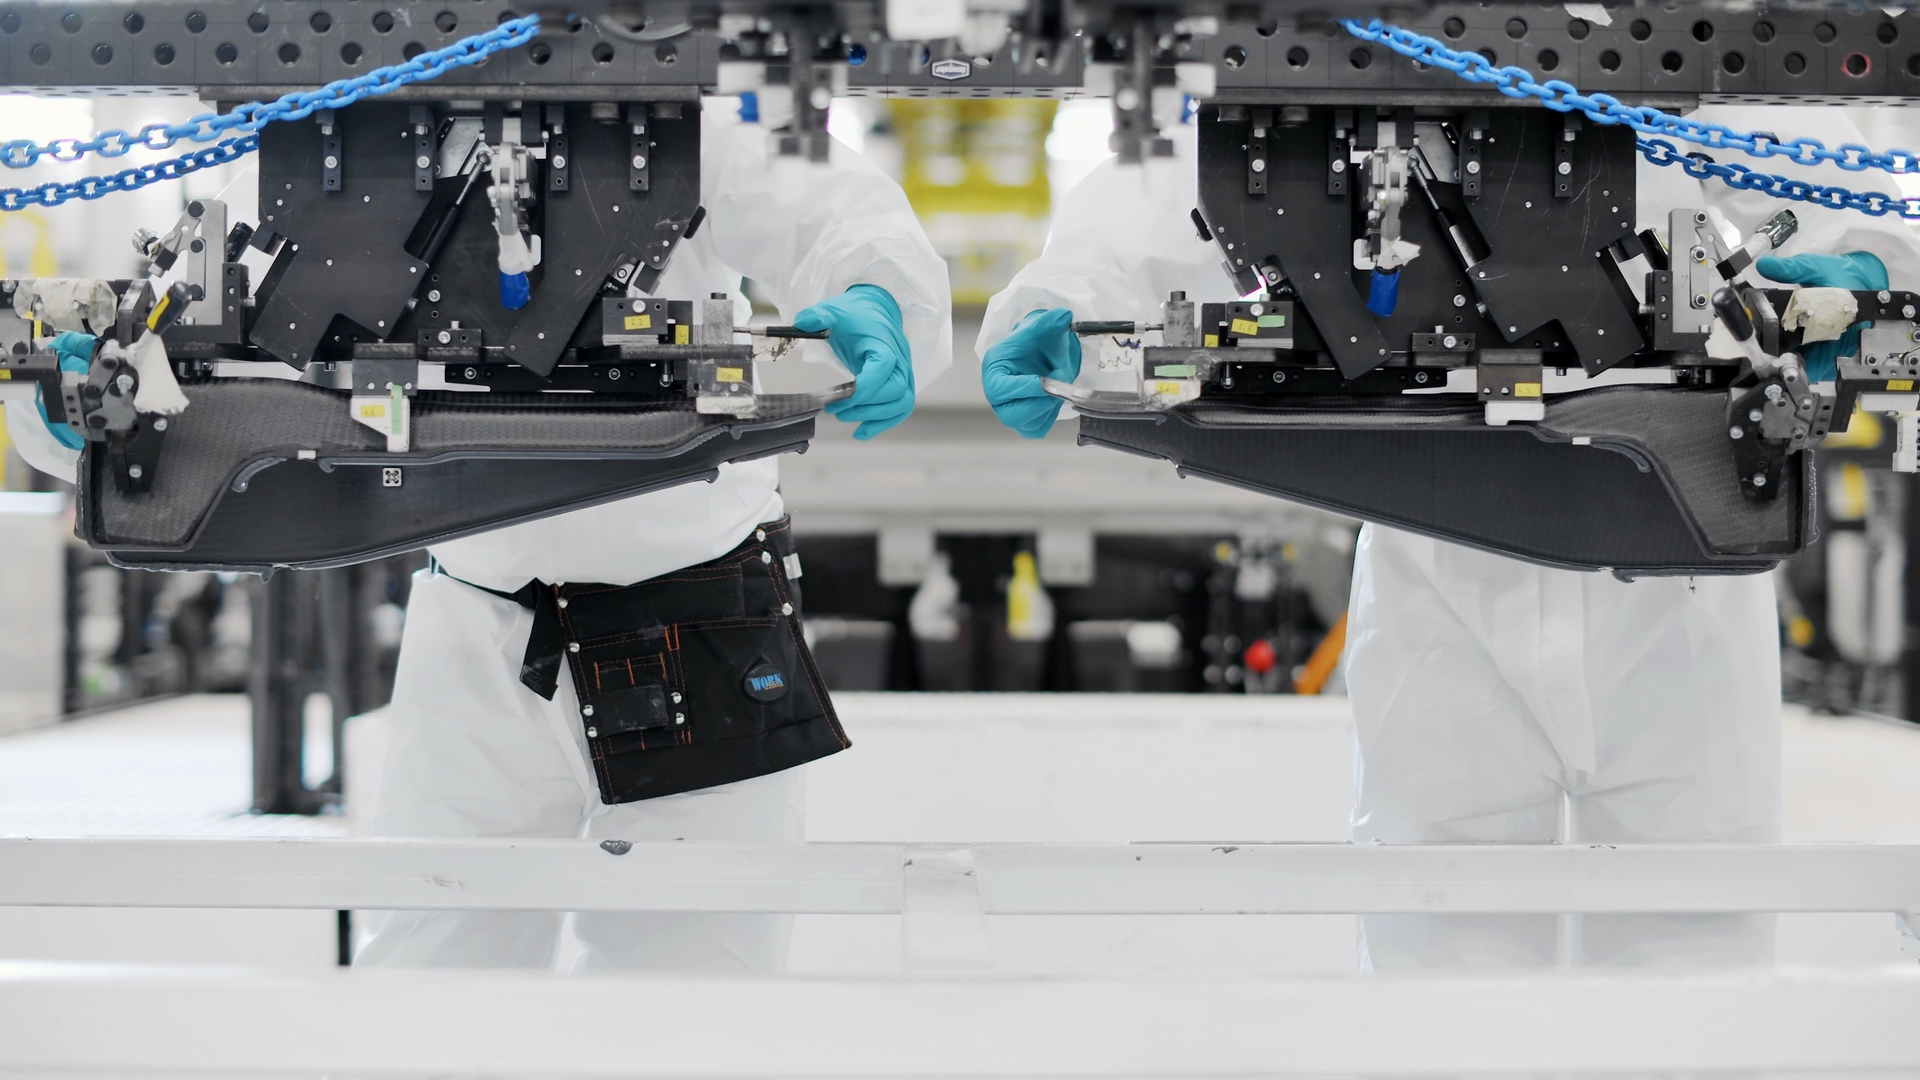 Polestar_Chengdu_Production_Centre_Polestar_1_002_CFRP_Body_Structure_Manufacturing